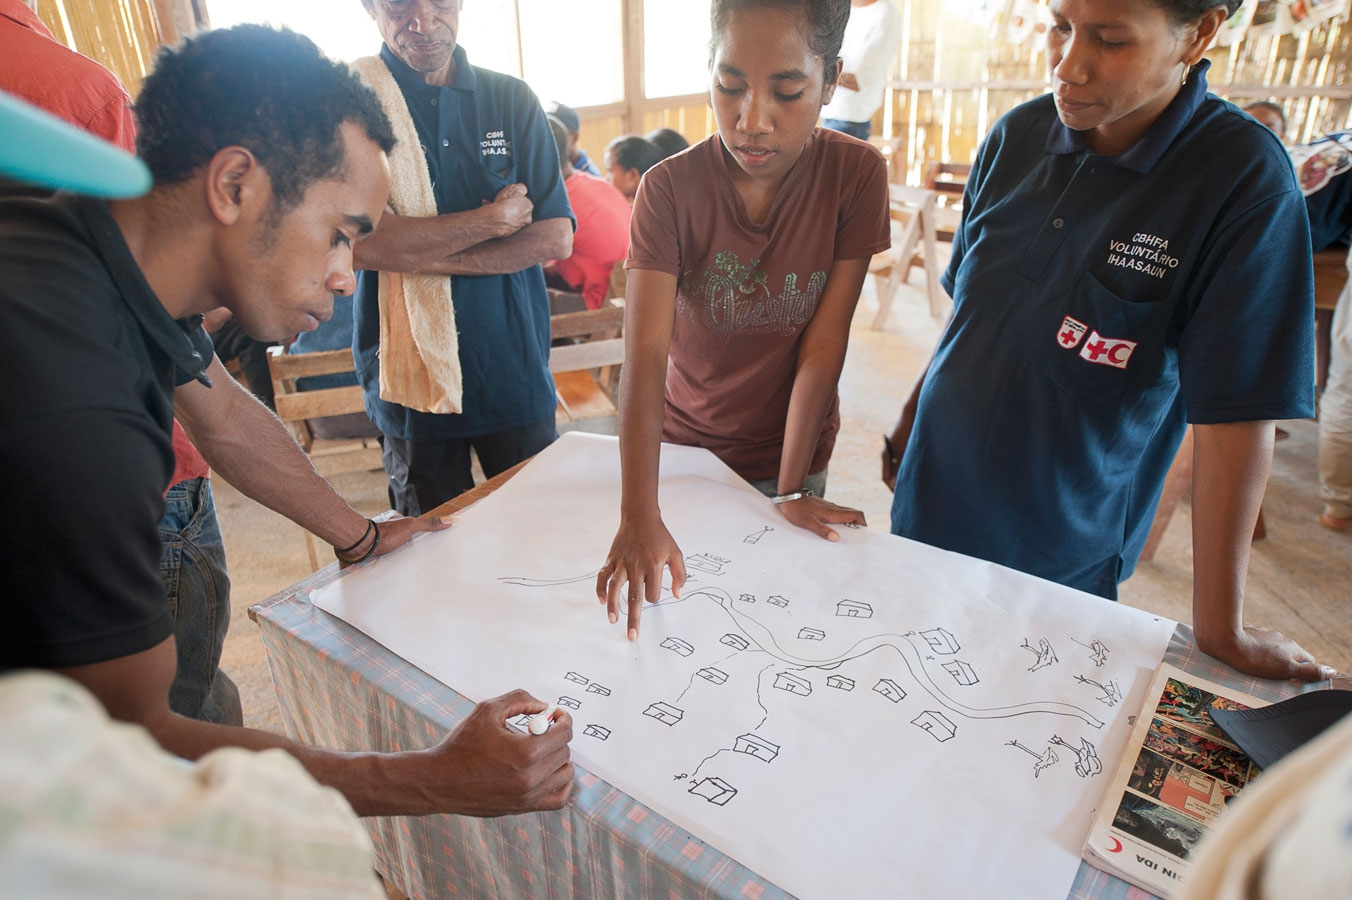 <p>Red Cross volunteers help locals map their village a part of an IFRC Community Based Health program</p>